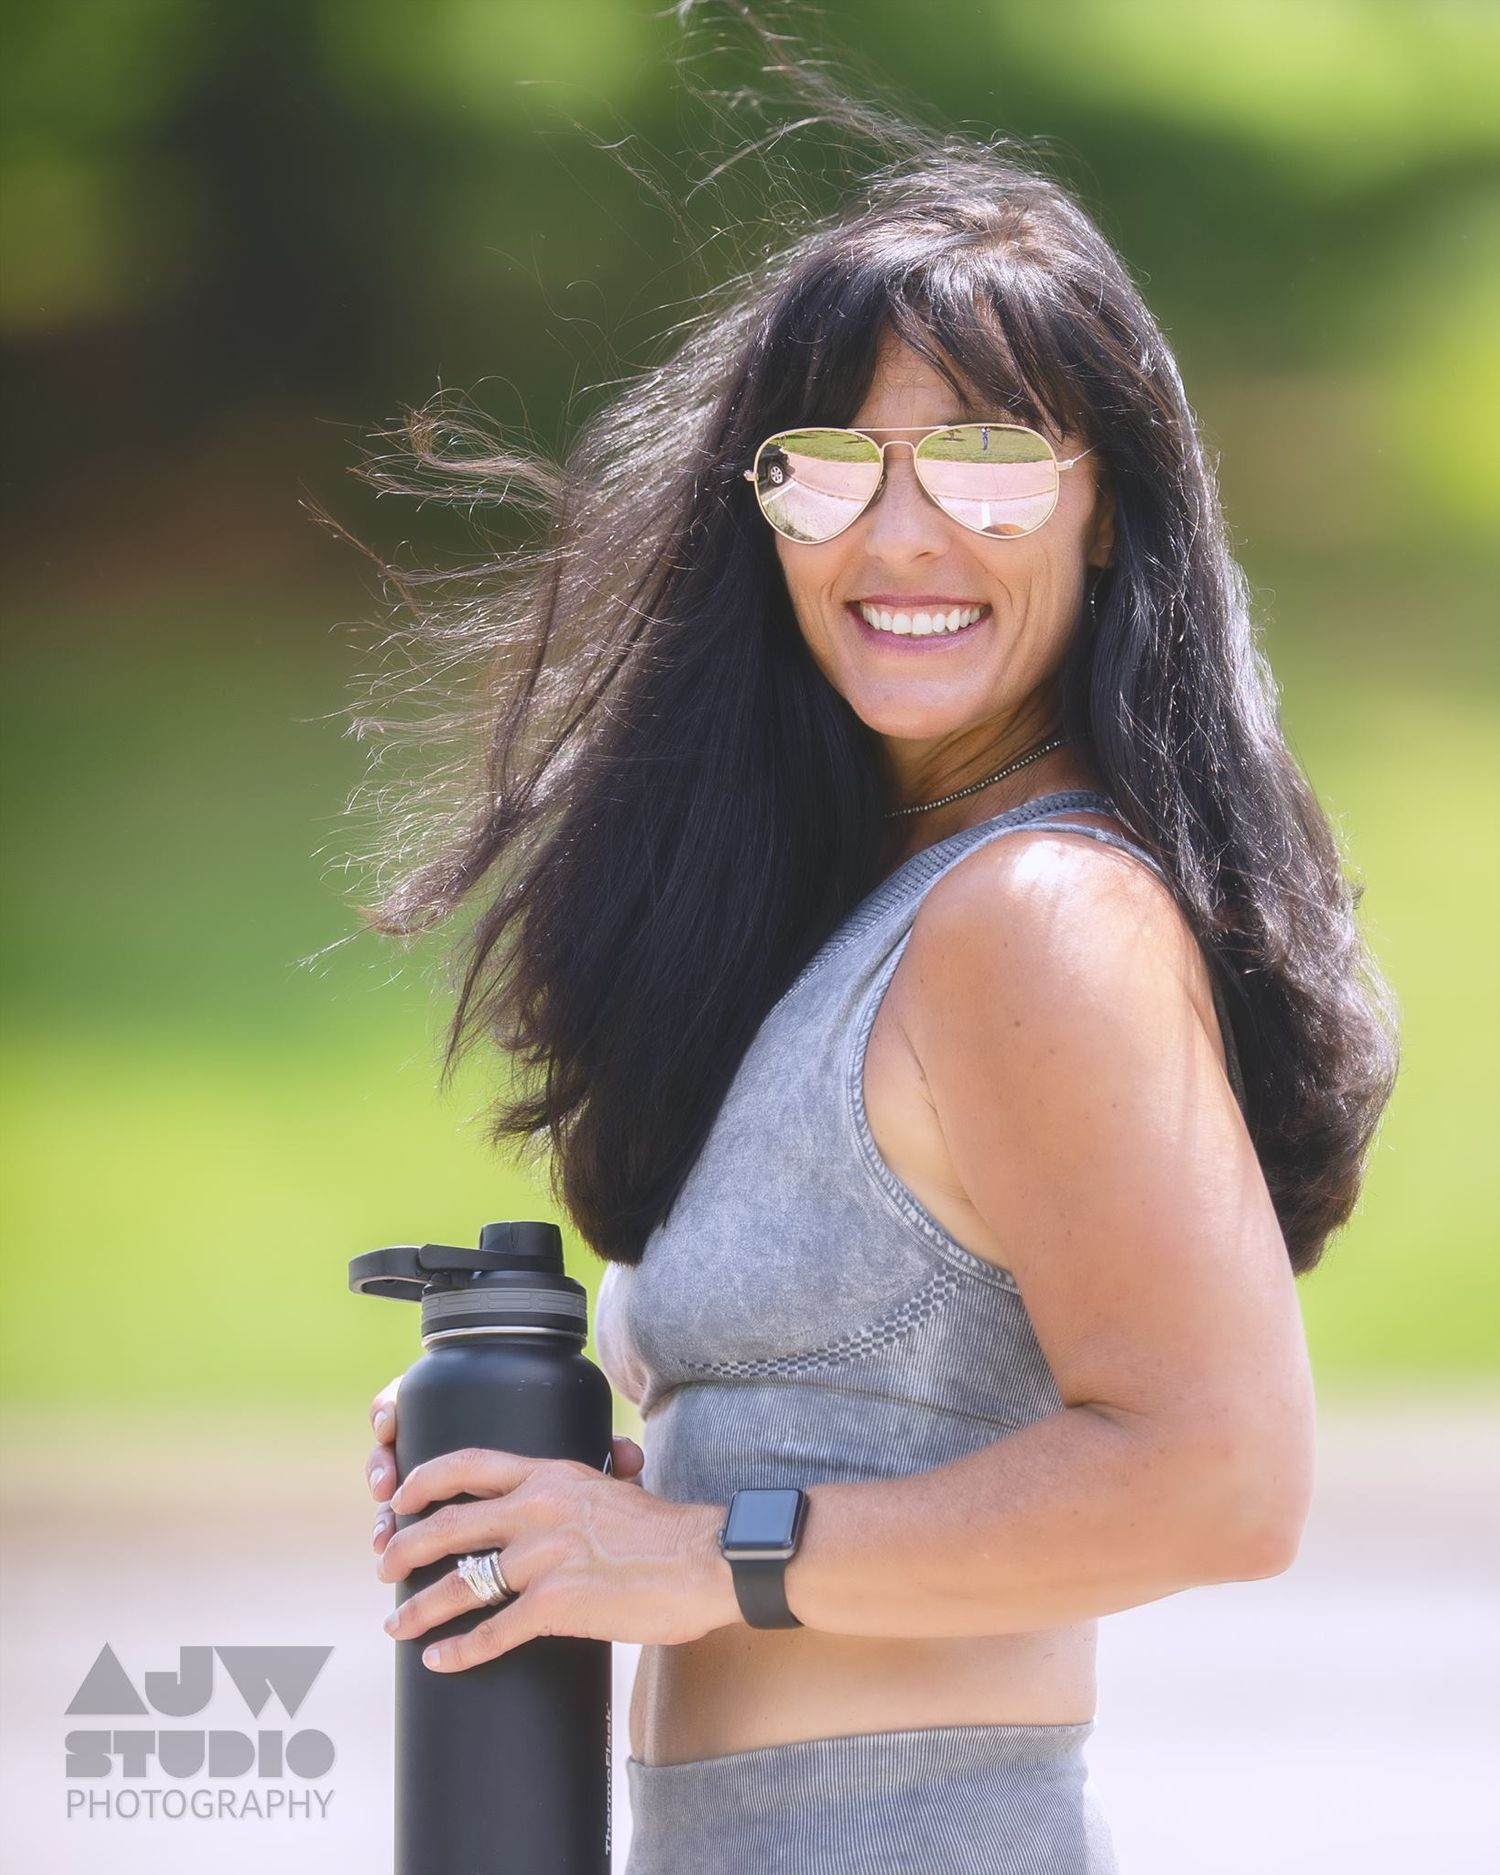 female fitness instructor with wind blown dark hair poses with water bottle